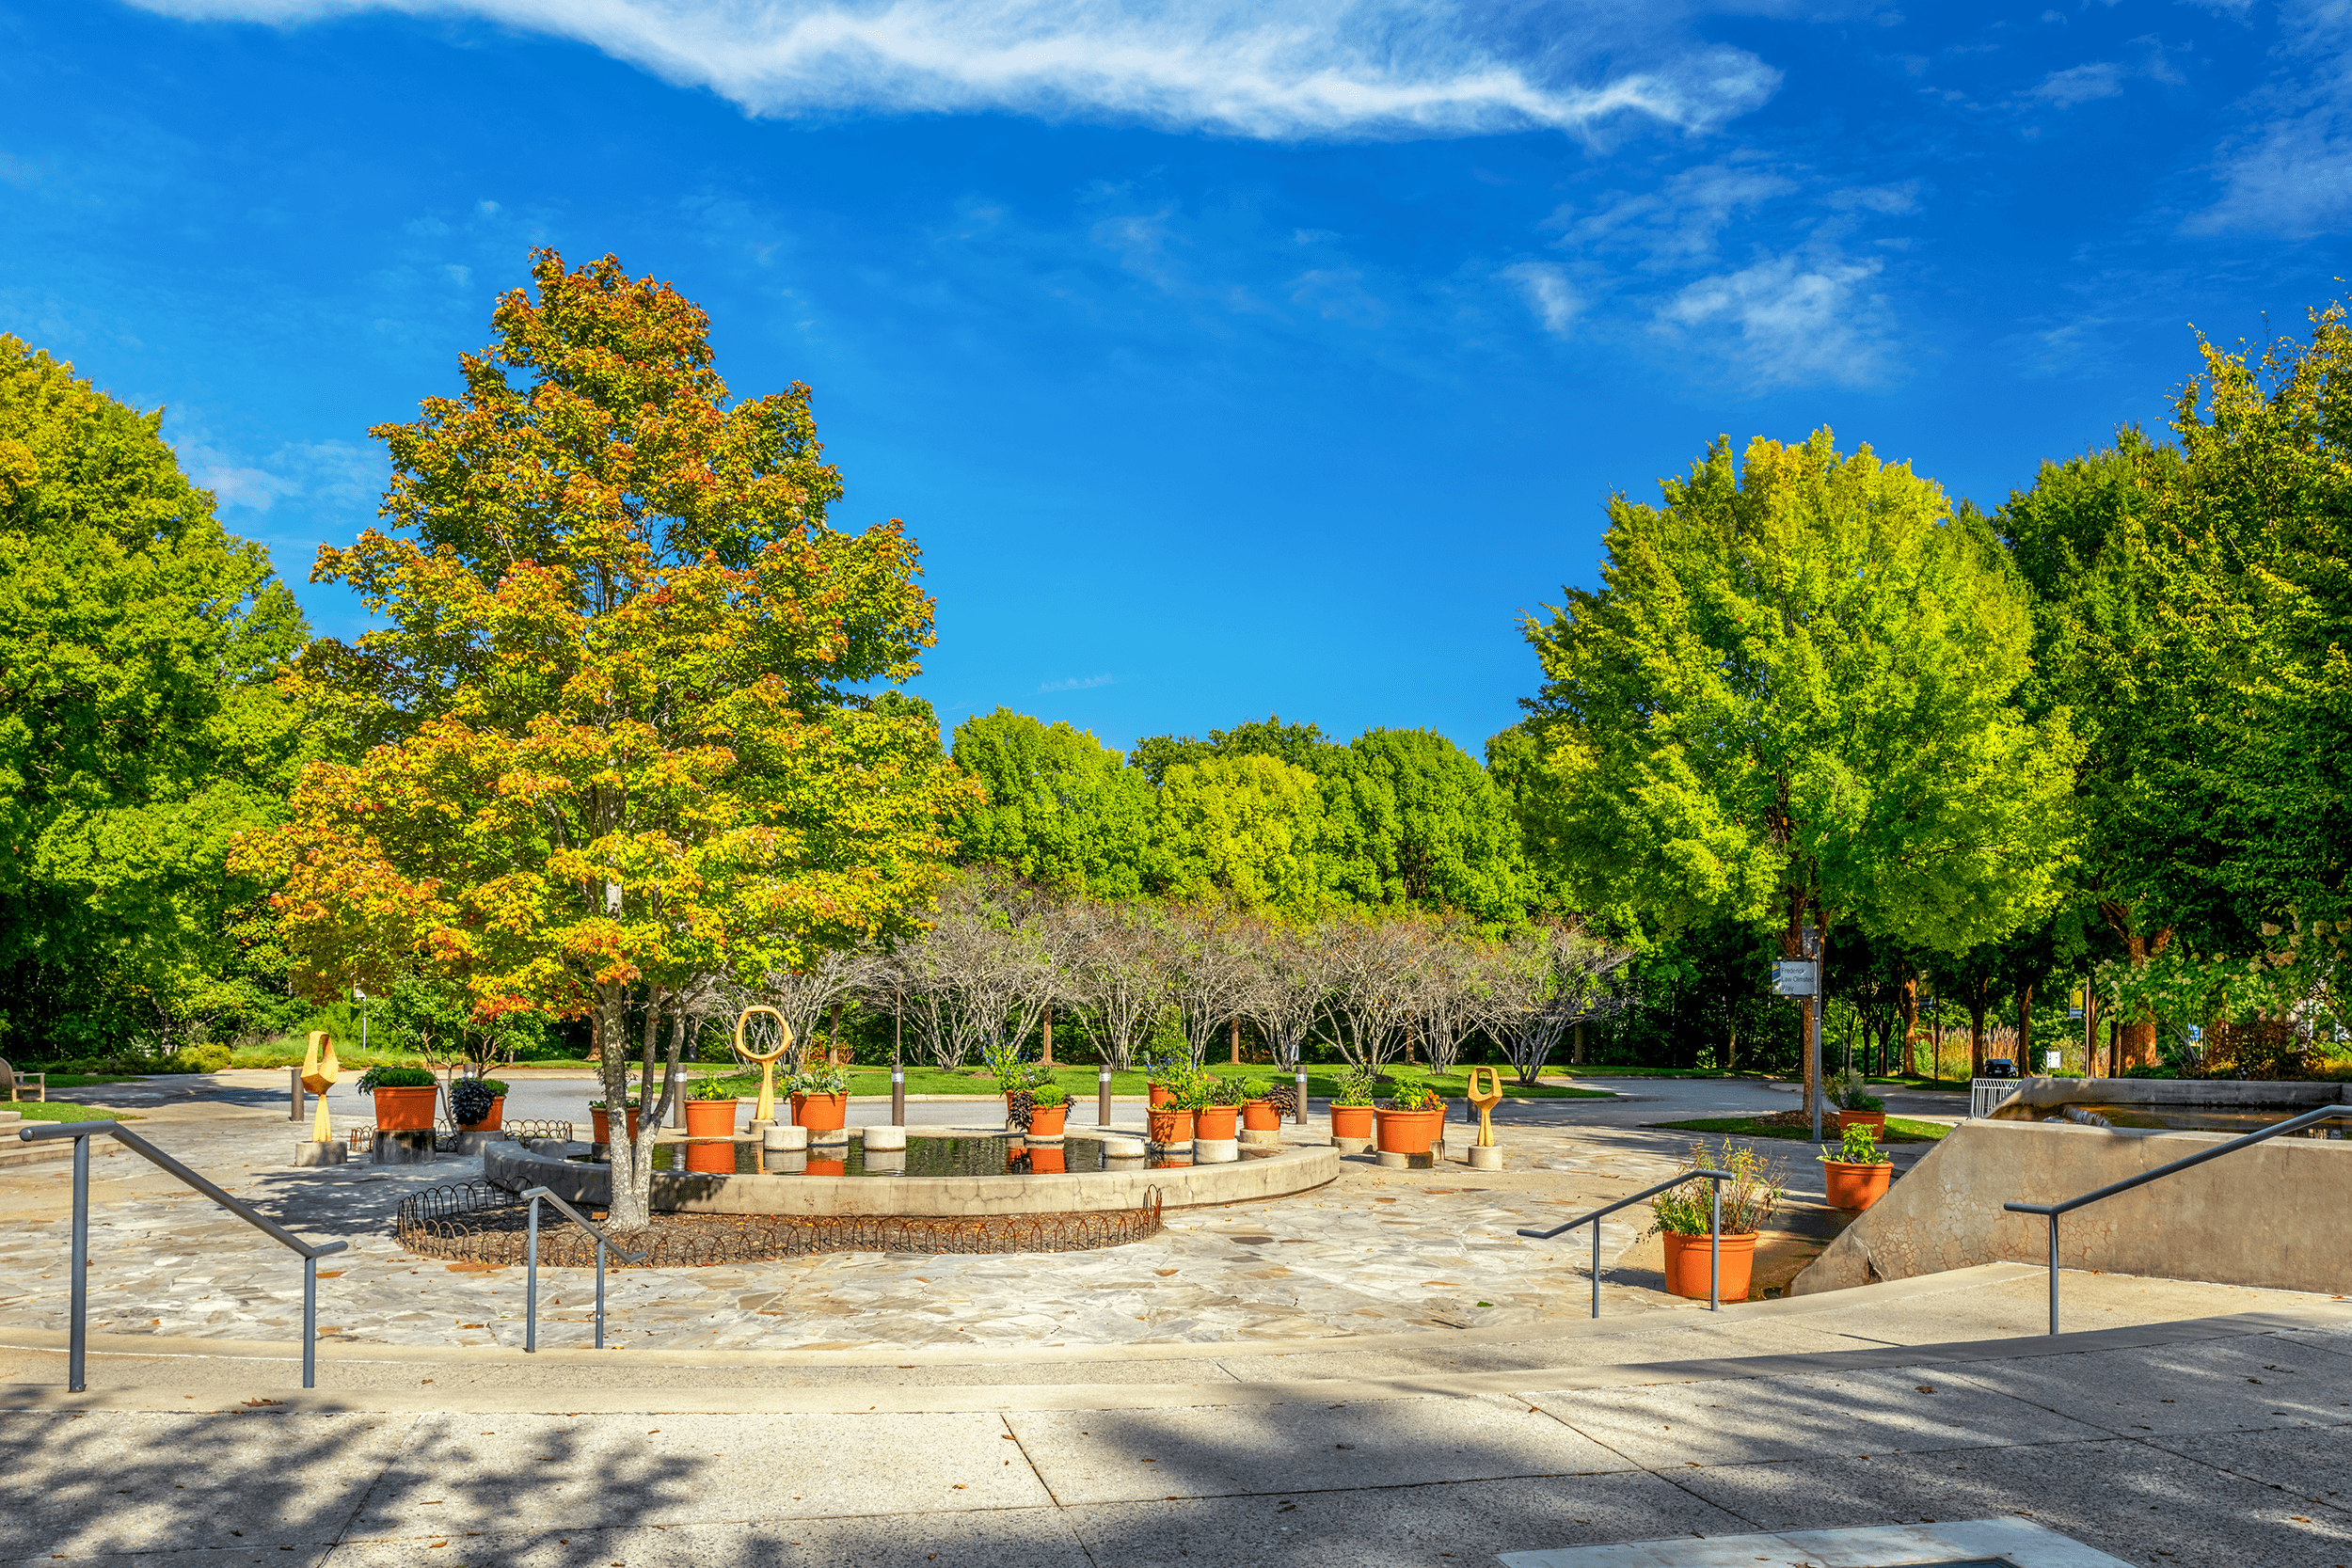 View from the  Entrance Plaza  by the  Education Center . Three art pieces, called  Magniflowers , surround the water pool at the center of the plaza. Also located in the  Education Center  is the  Savory Thyme Café .